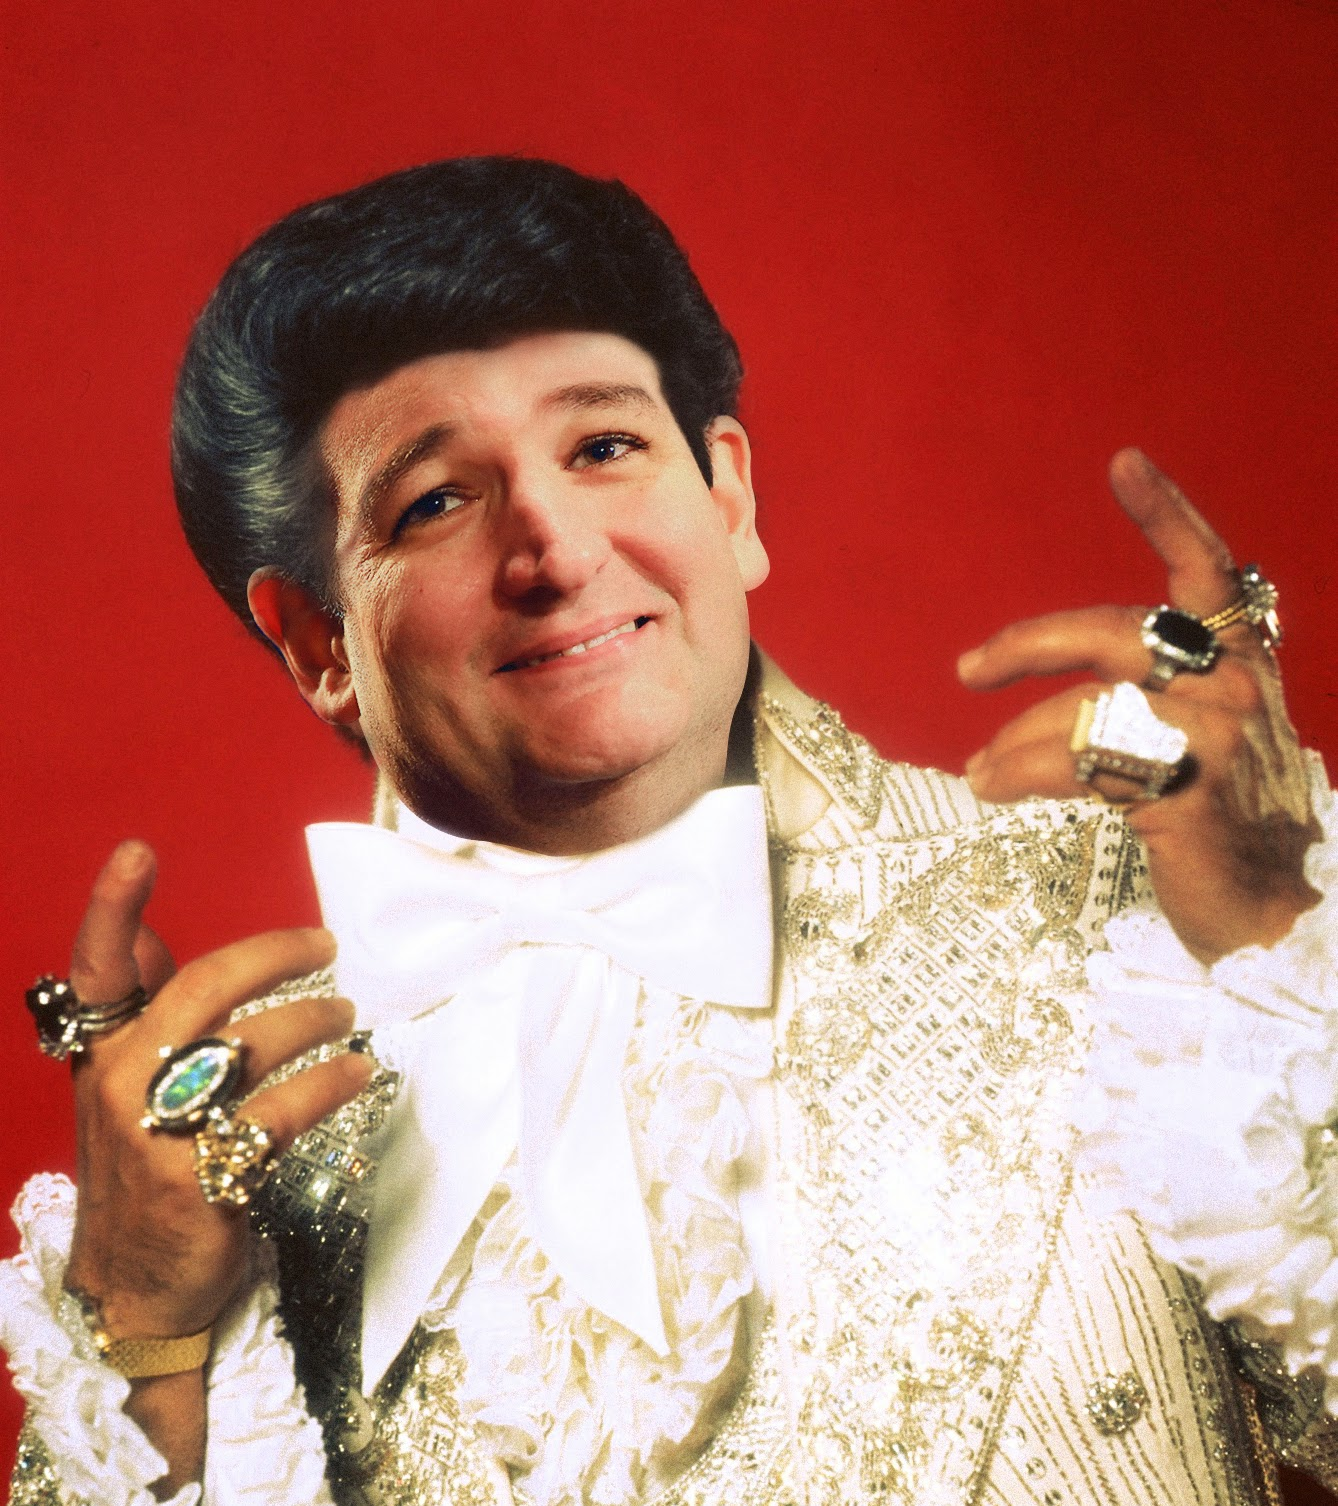 DownWithTyranny!: Ted Cruz And The Gays